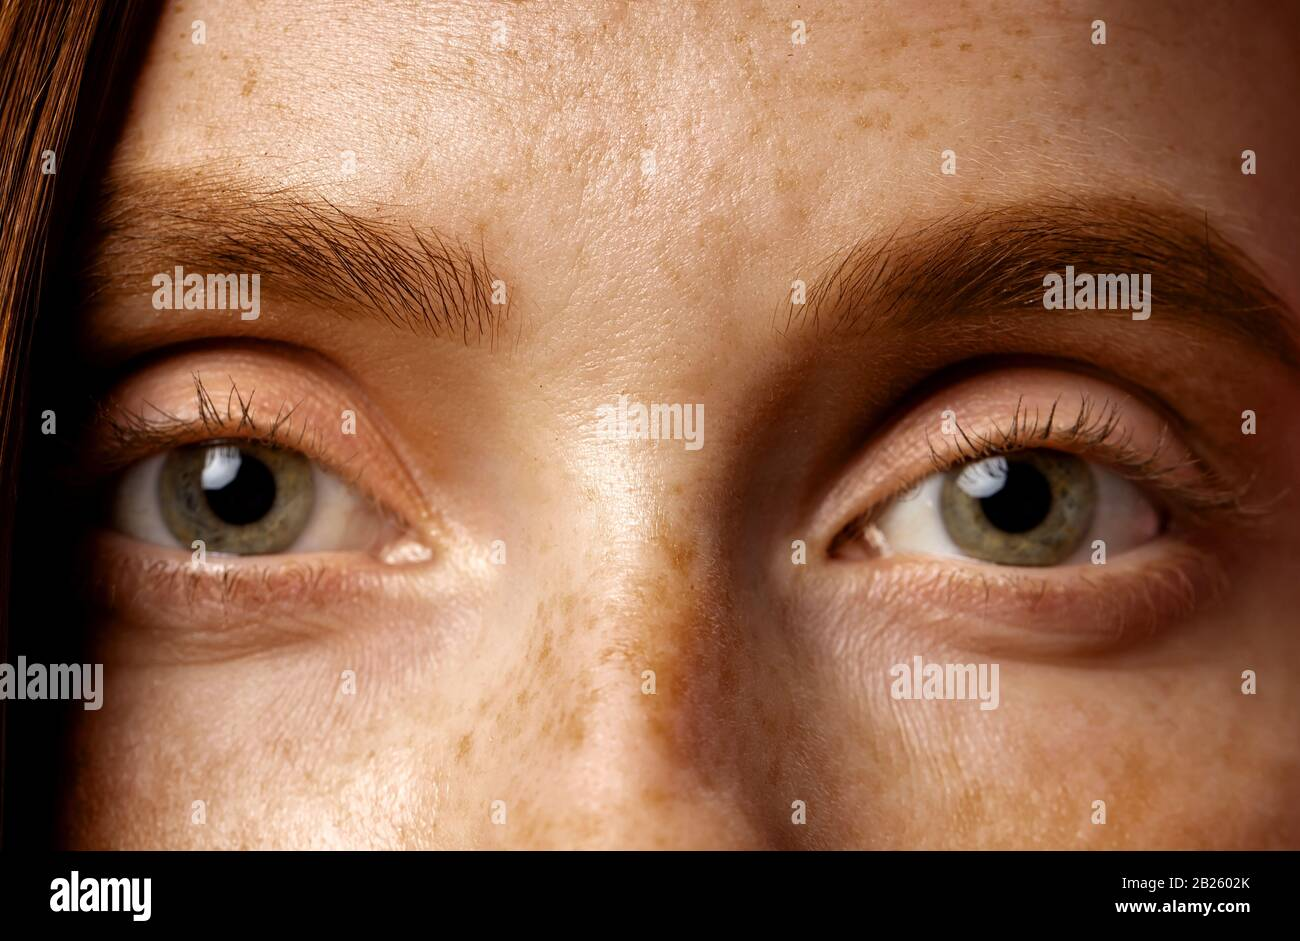 Beautiful female eyes. Close up cropped shot of redhead caucasian young woman with freckles, no makeup. Ophthalmology, vision concept. Stock Photo